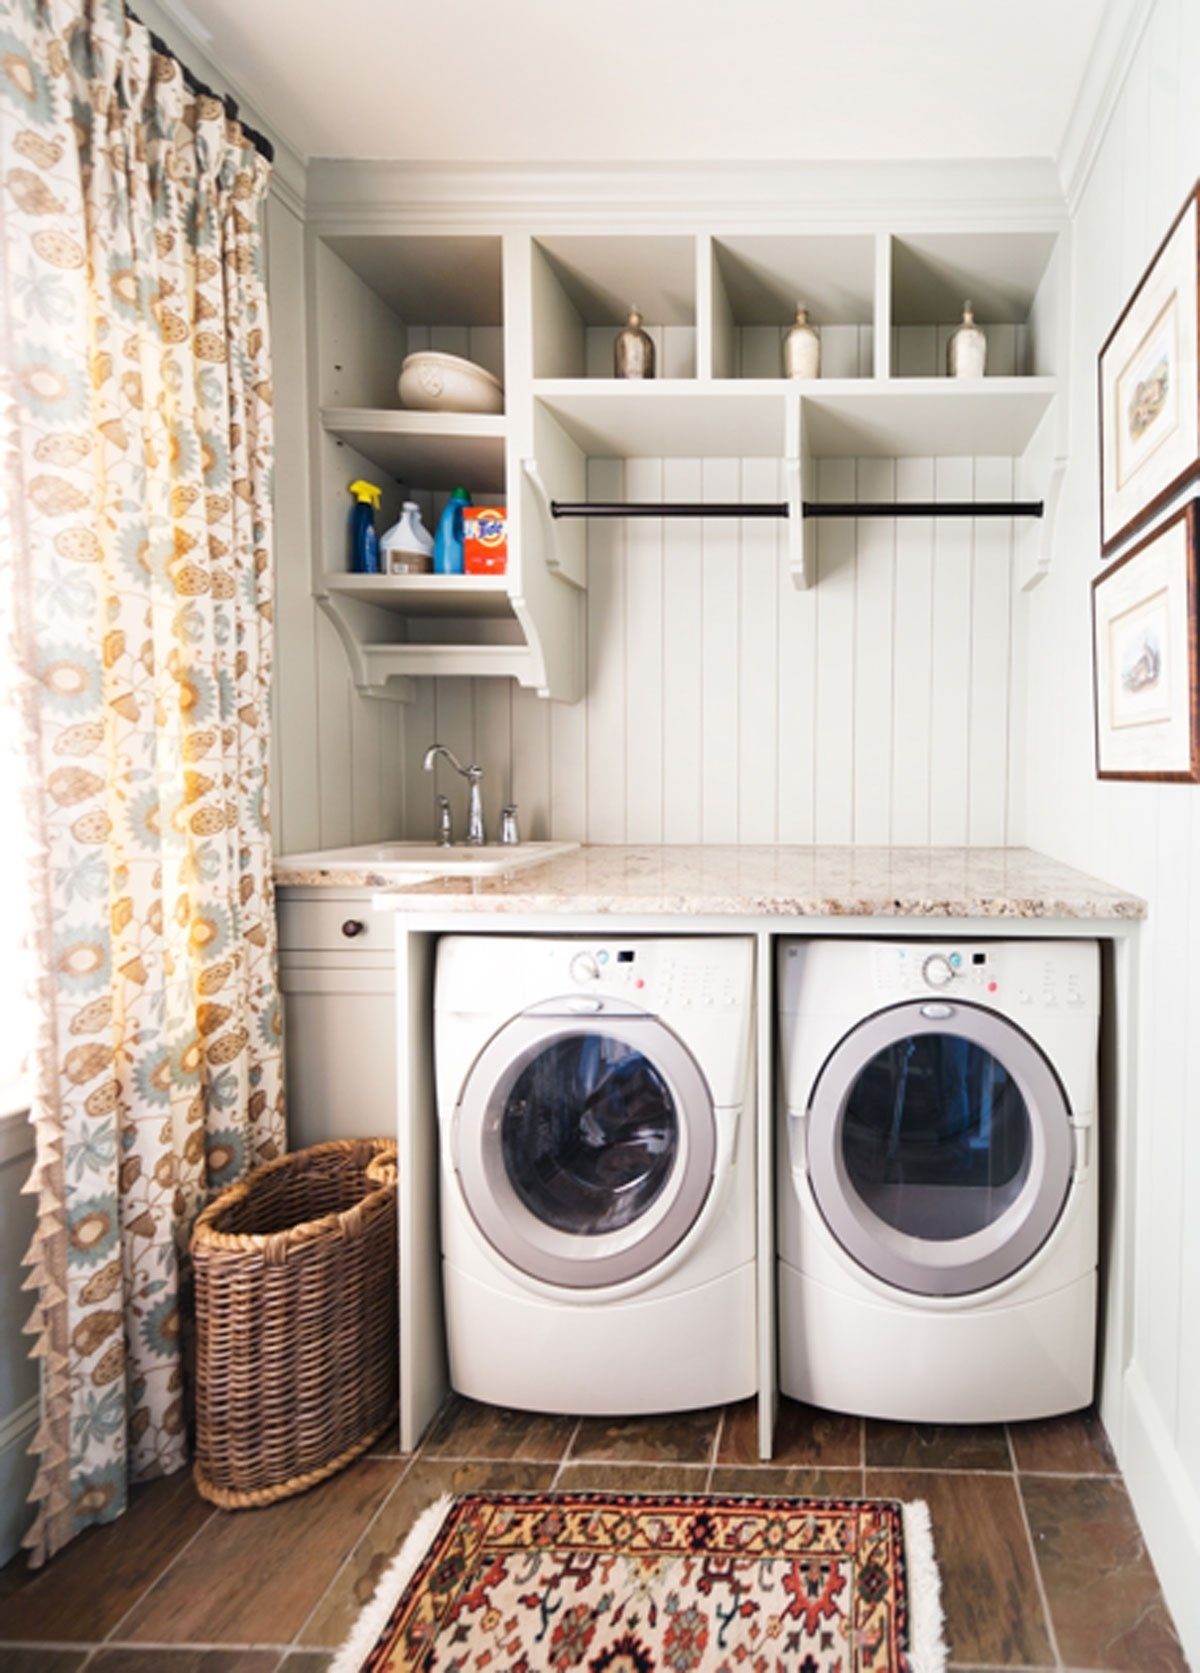 10 Great Small Laundry Room Storage Ideas cool small laundry room storage 42 space gacariyalur 2021